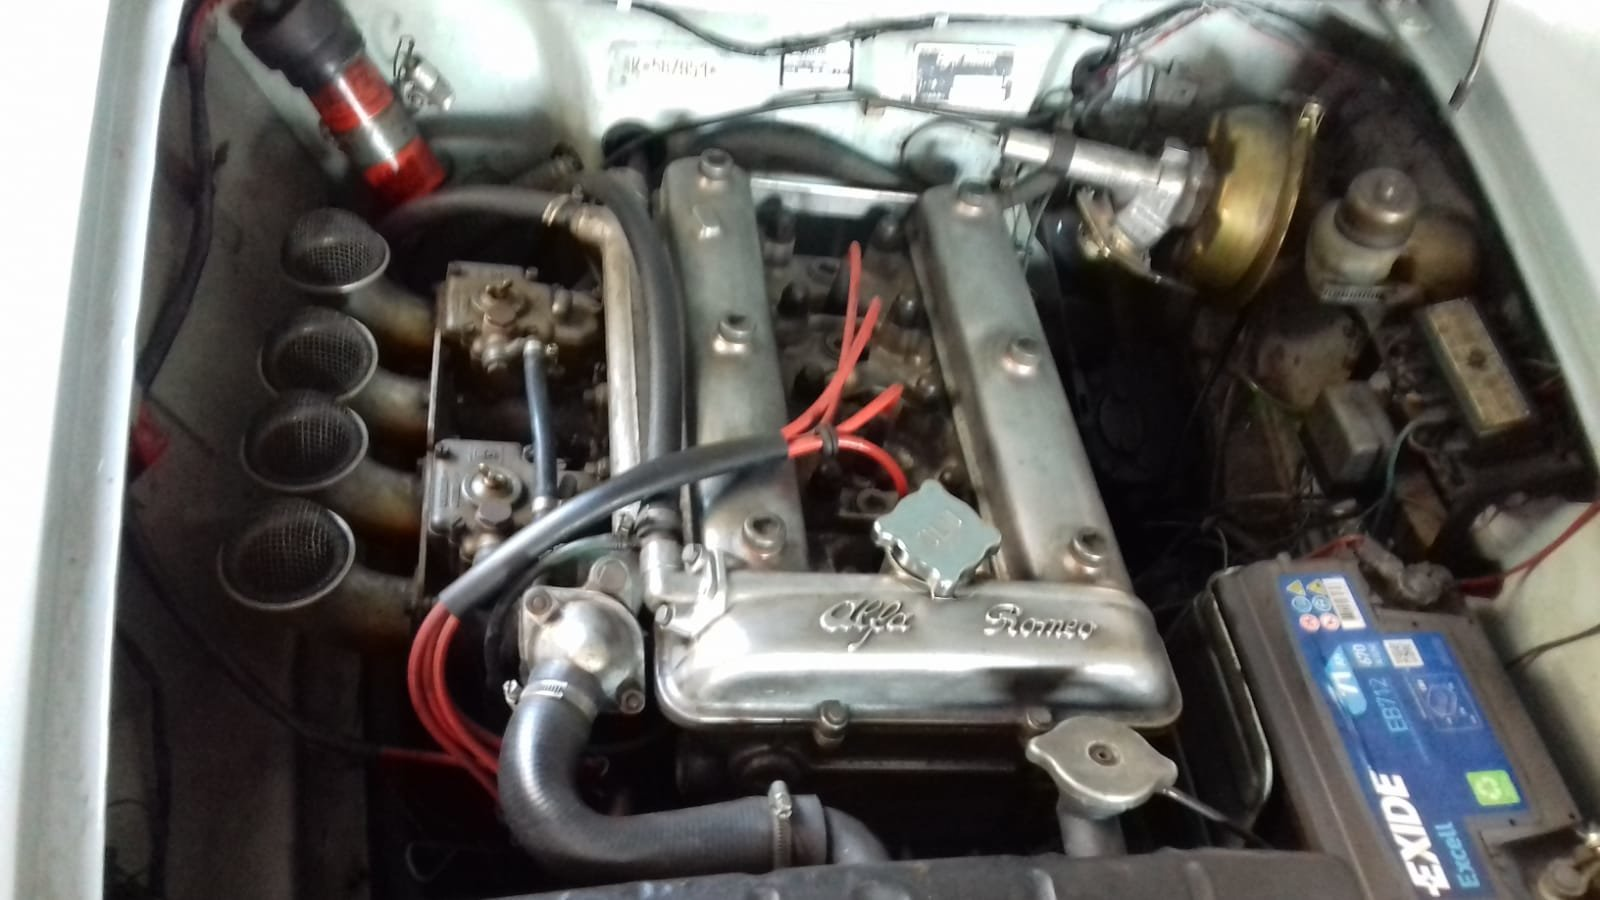 1966 superb giulia 1300 1750engine For Sale (picture 5 of 6)